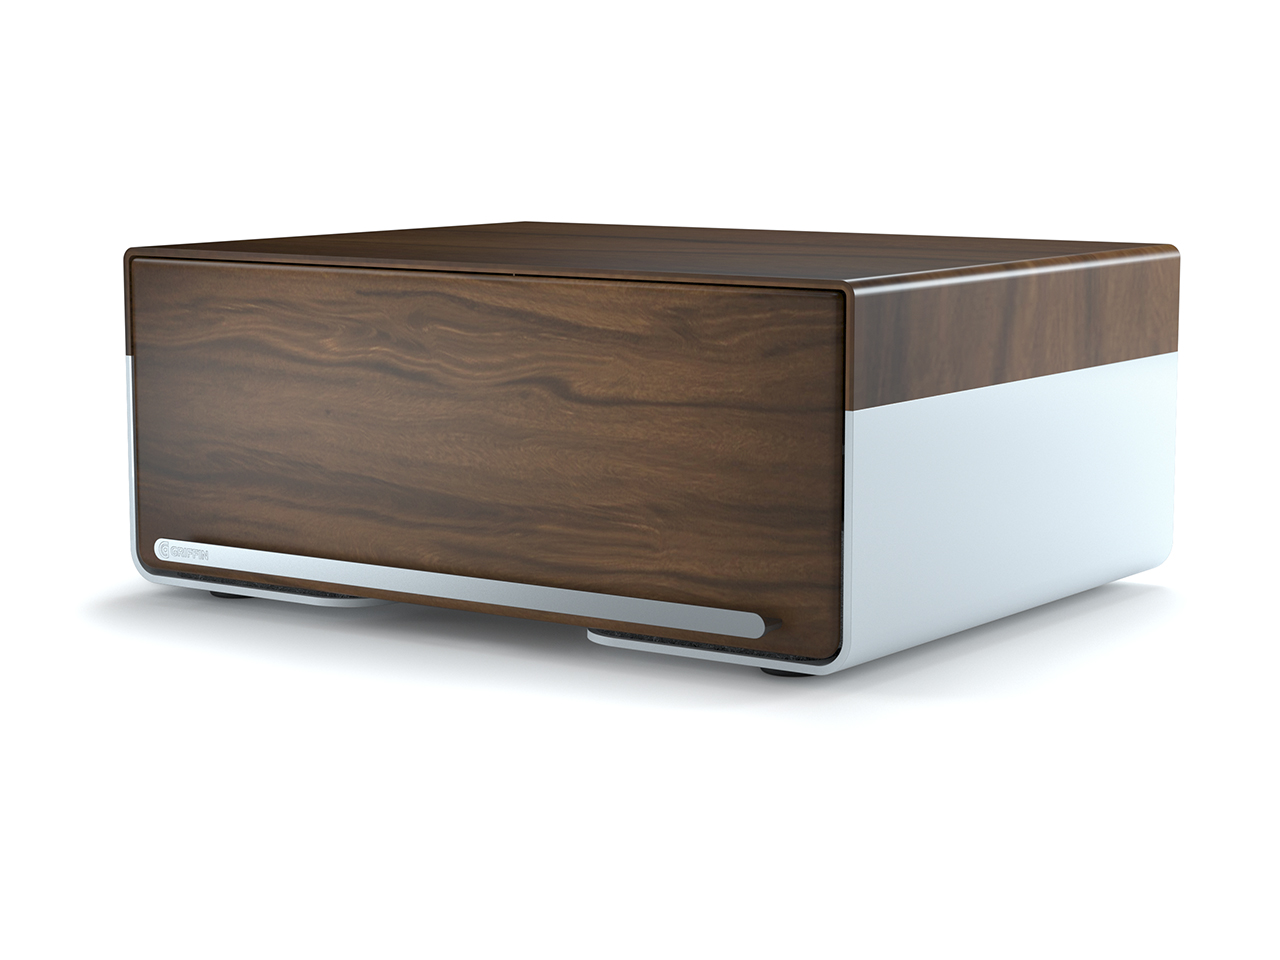 Griffin Cove USB 5-Port Charging Station, Medium Walnut, An elegant place to store and charge everything. by Griffin Technology